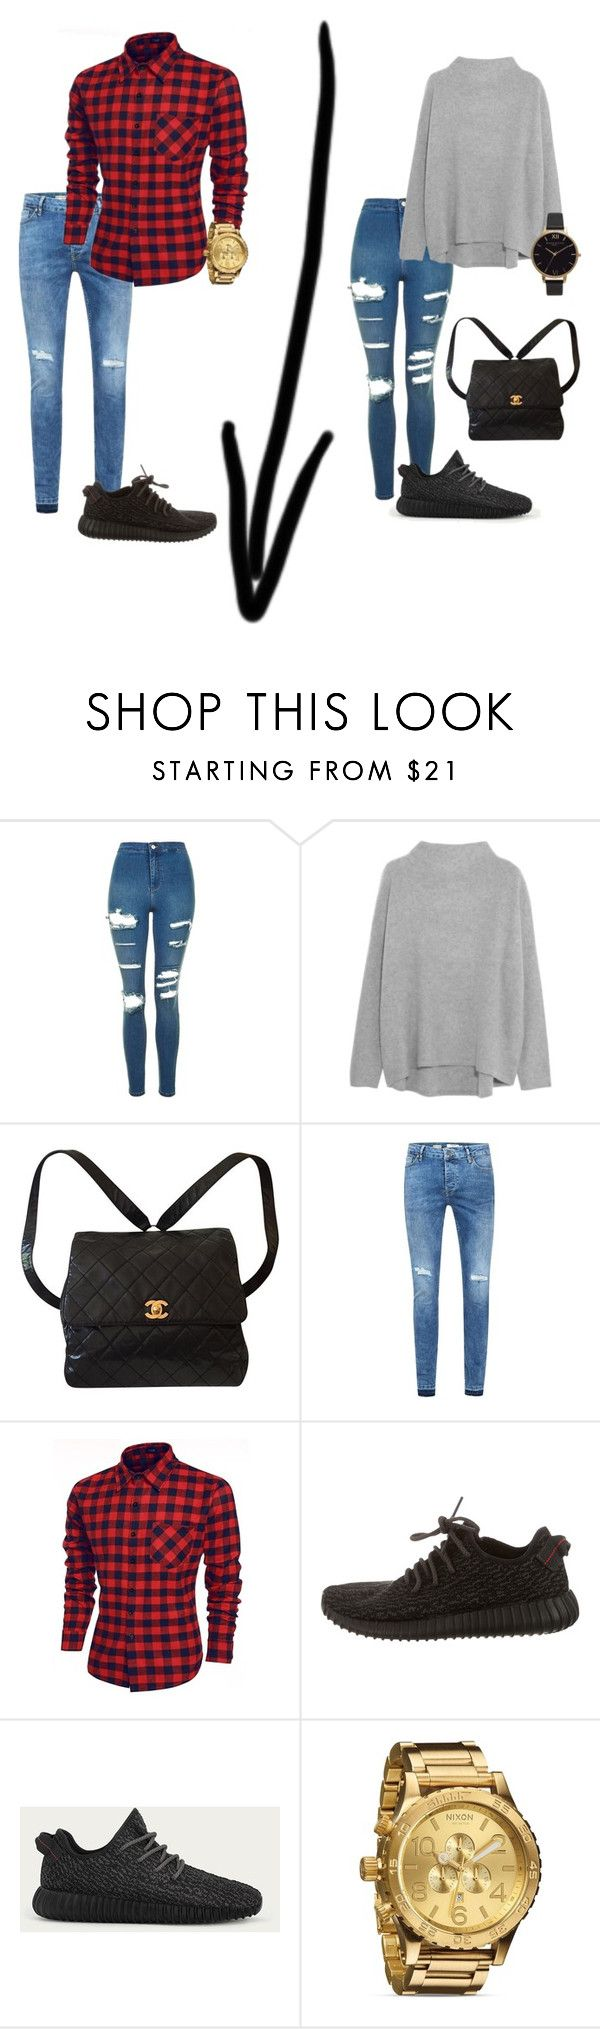 """""""Couple Going Out (IDEK)"""" by angelaxblackbear ❤ liked on Polyvore featuring Topshop, Vince, Chanel, Topman, adidas, Nixon and Olivia Burton"""